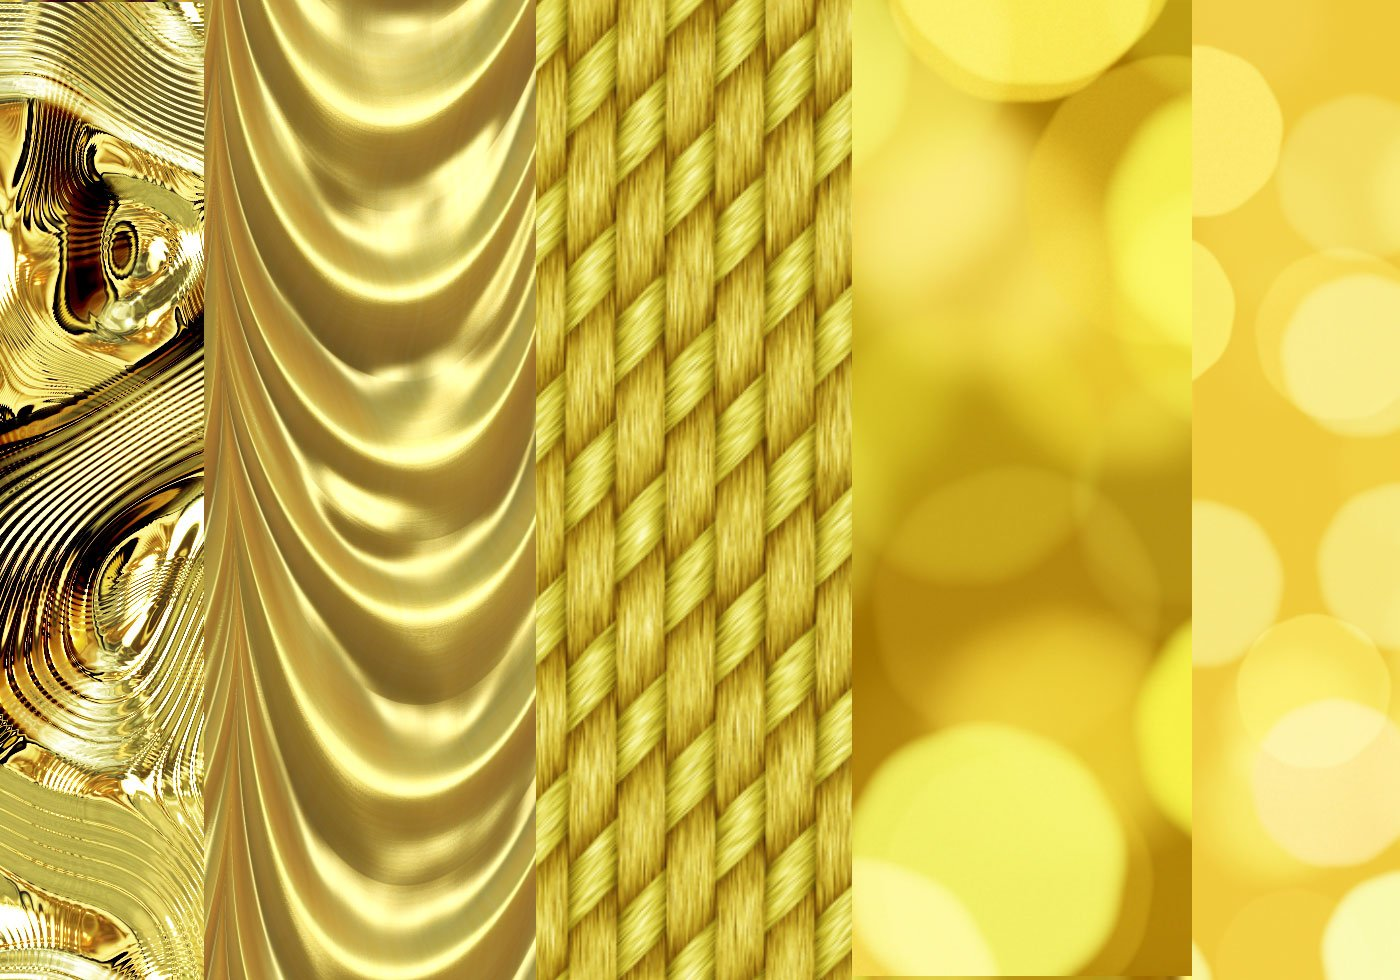 Gold Shining Patterns Free Photoshop Brushes At Brusheezy